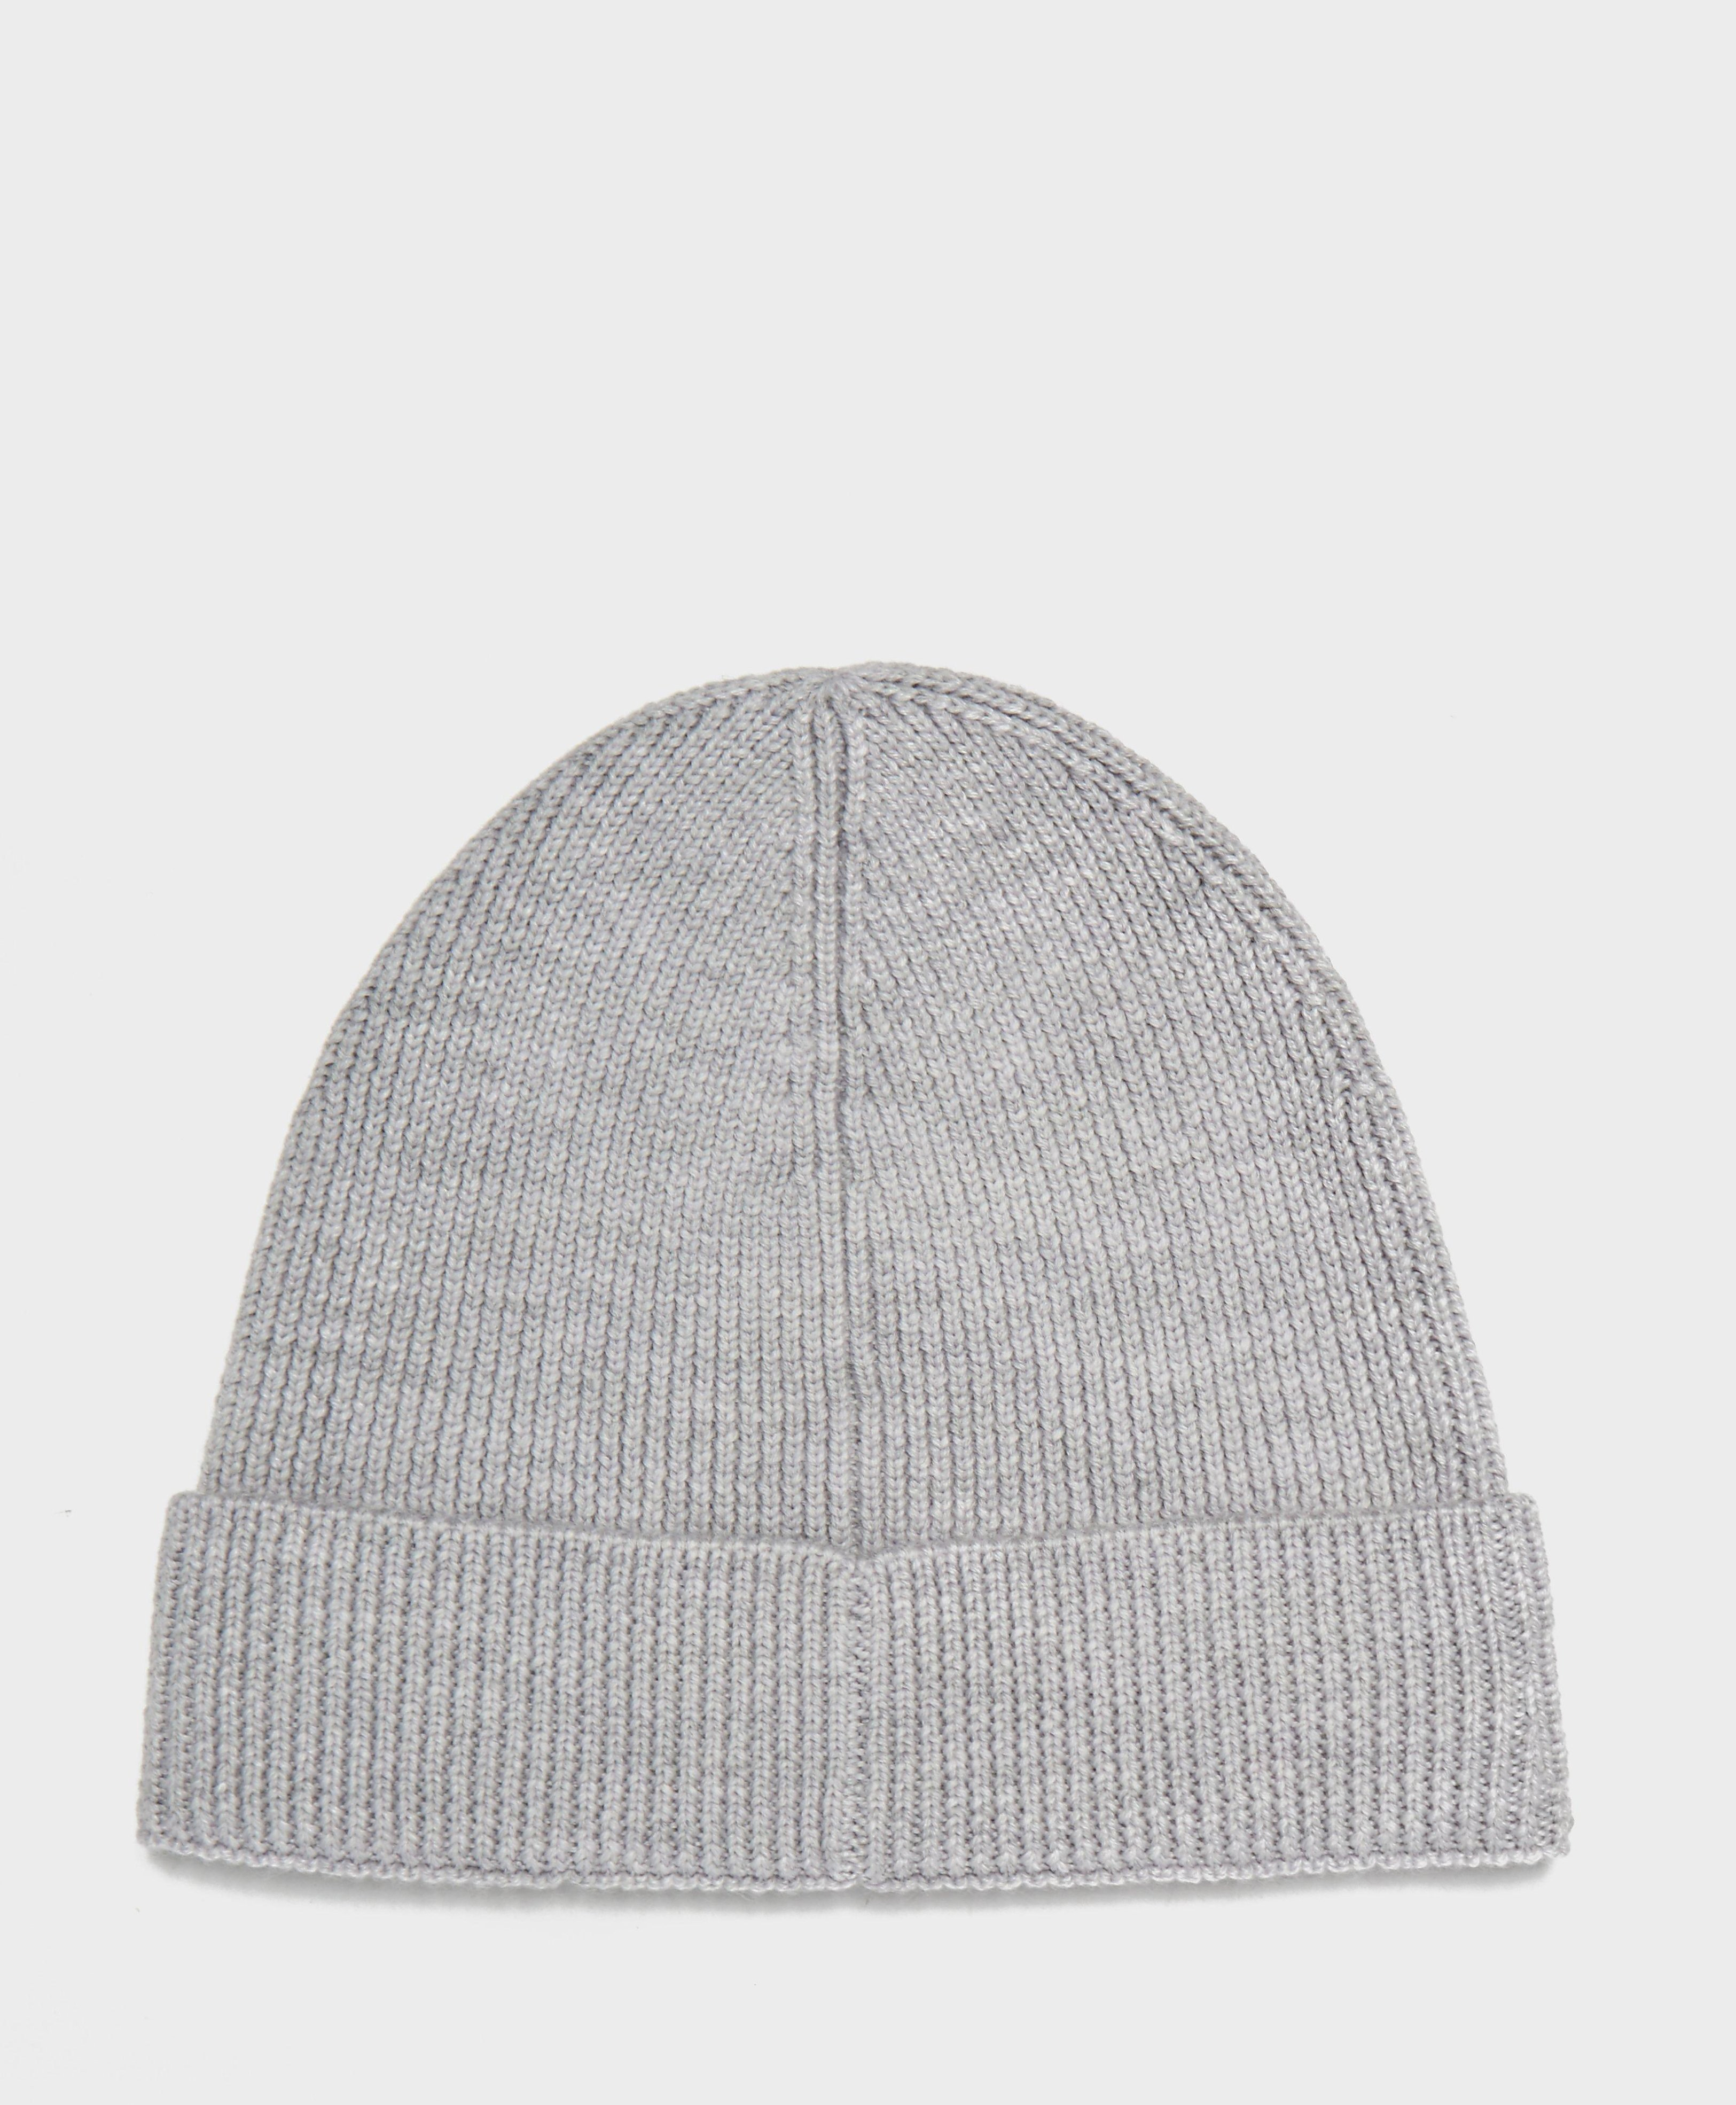 Lacoste Knitted Beanie